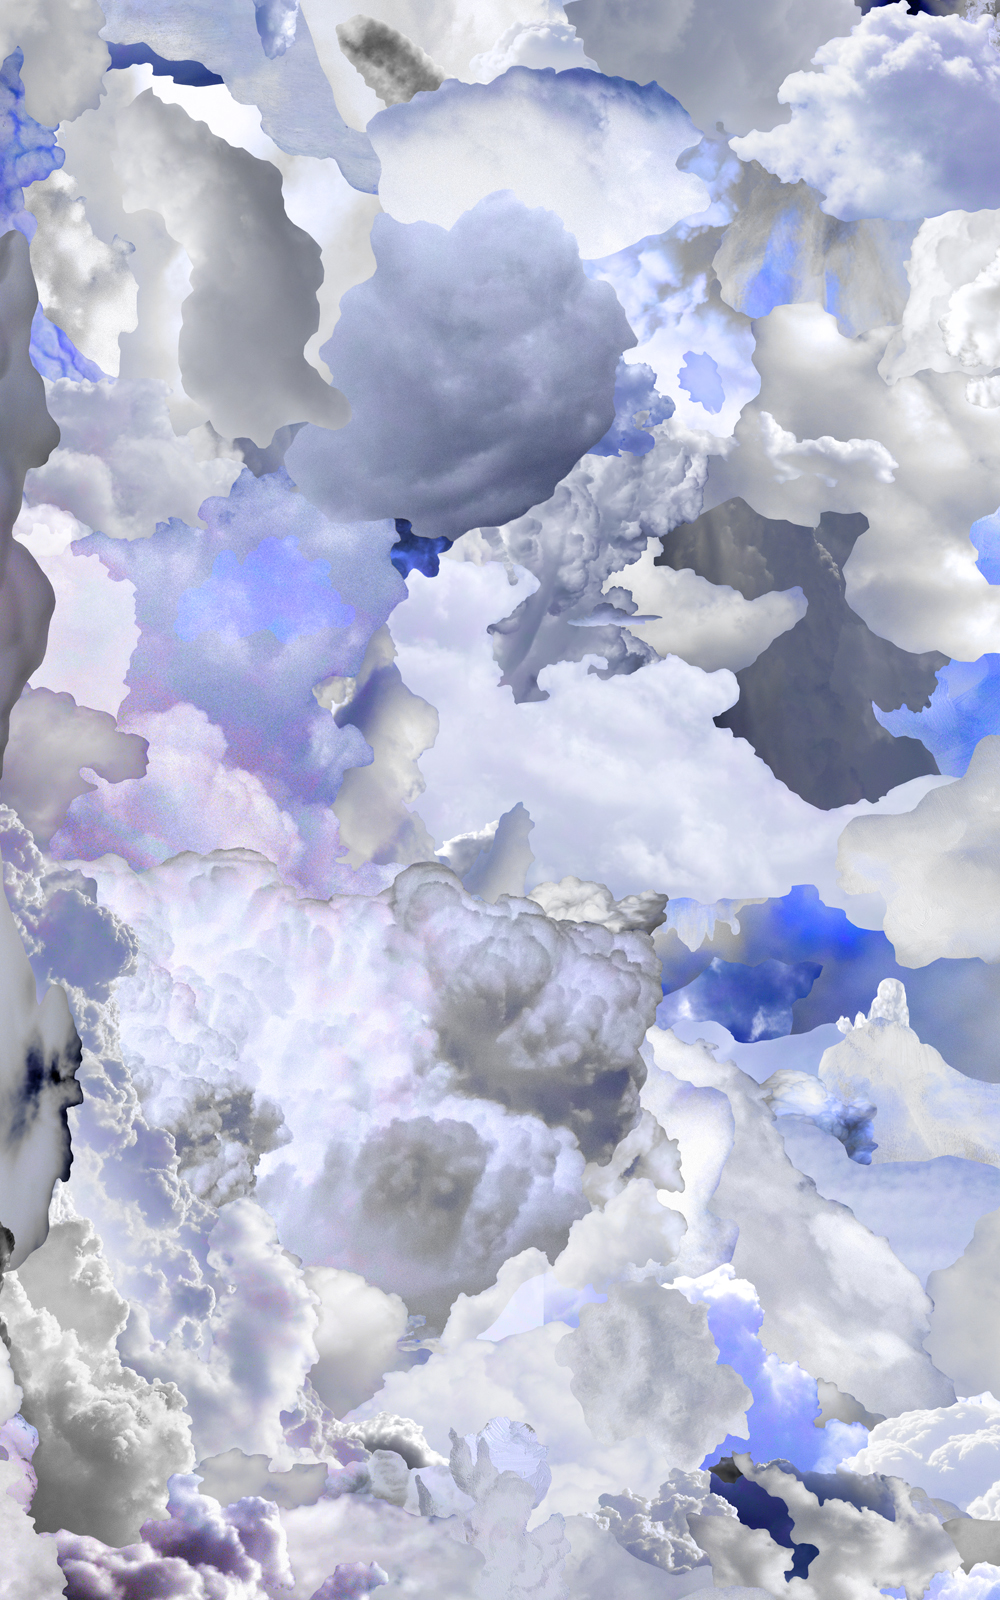 Case Simmons, Simmons & Burke, Blue Clouds B, Cloud Collage, Pigment Print, Digital Collage, Digital Art, Photoshop Collage, Contemporary Collage, Case Simmons Art, Collage Fine Art, Epson Metallic Print, Abstract Digital Collage, Kohn Gallery